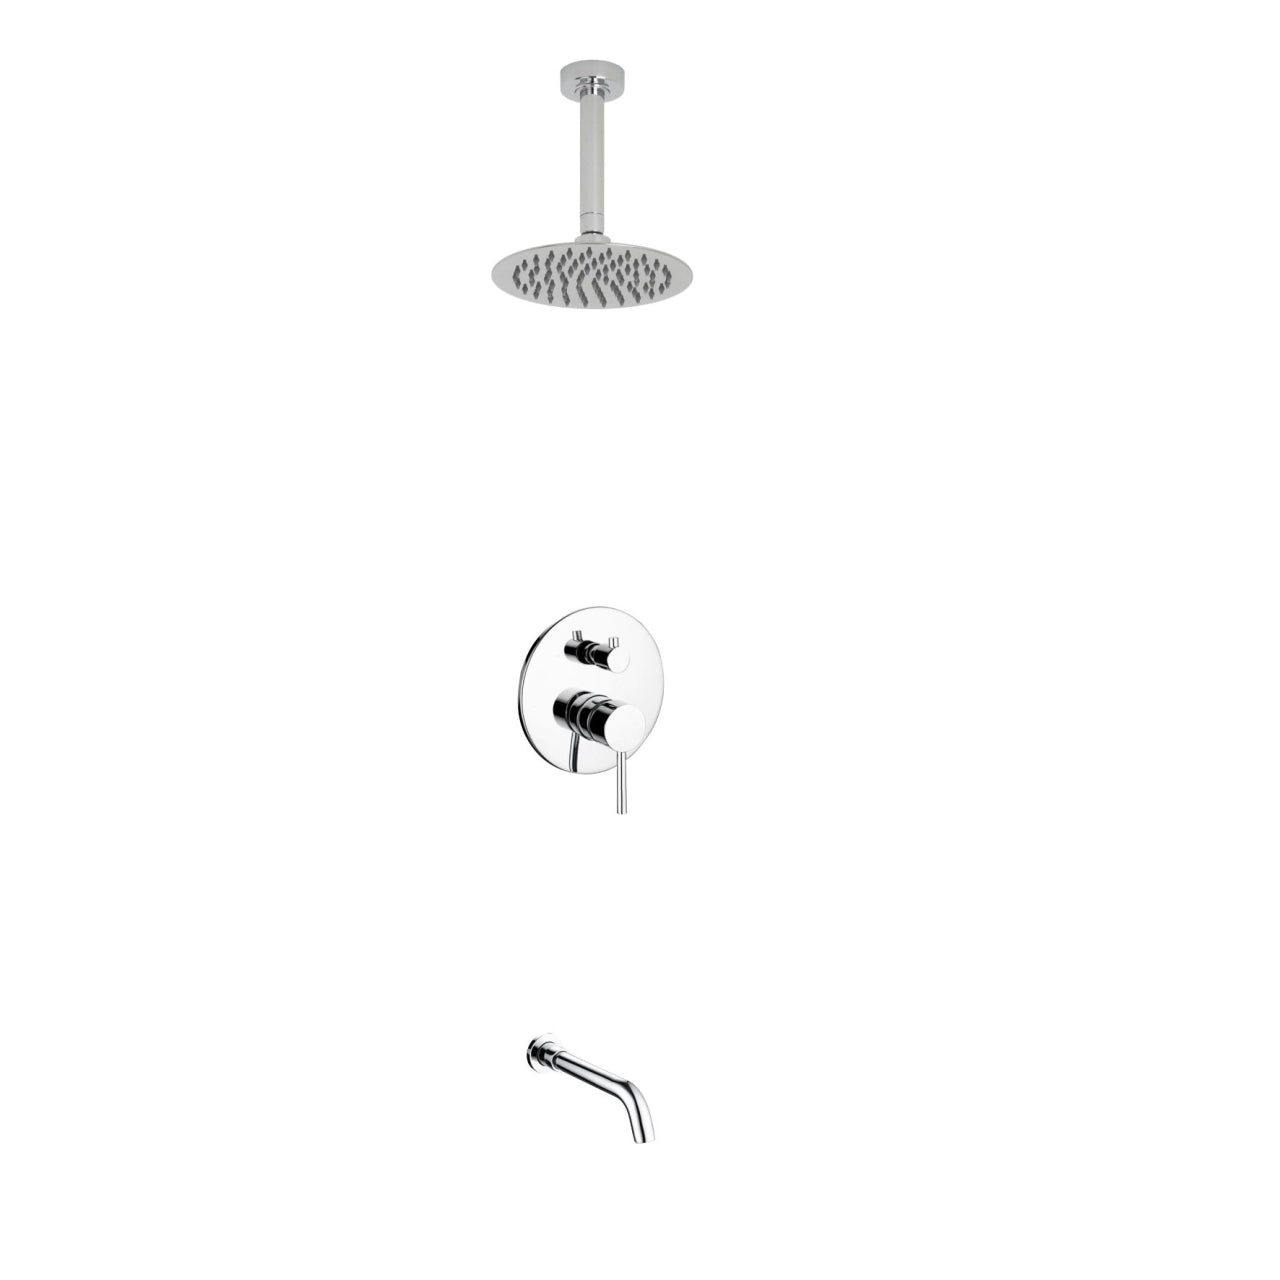 Aqua Rondo- Shower Faucet With Ceiling Mount 8″ Rain Shower and Tub Filler - CCSUPPLY INC.